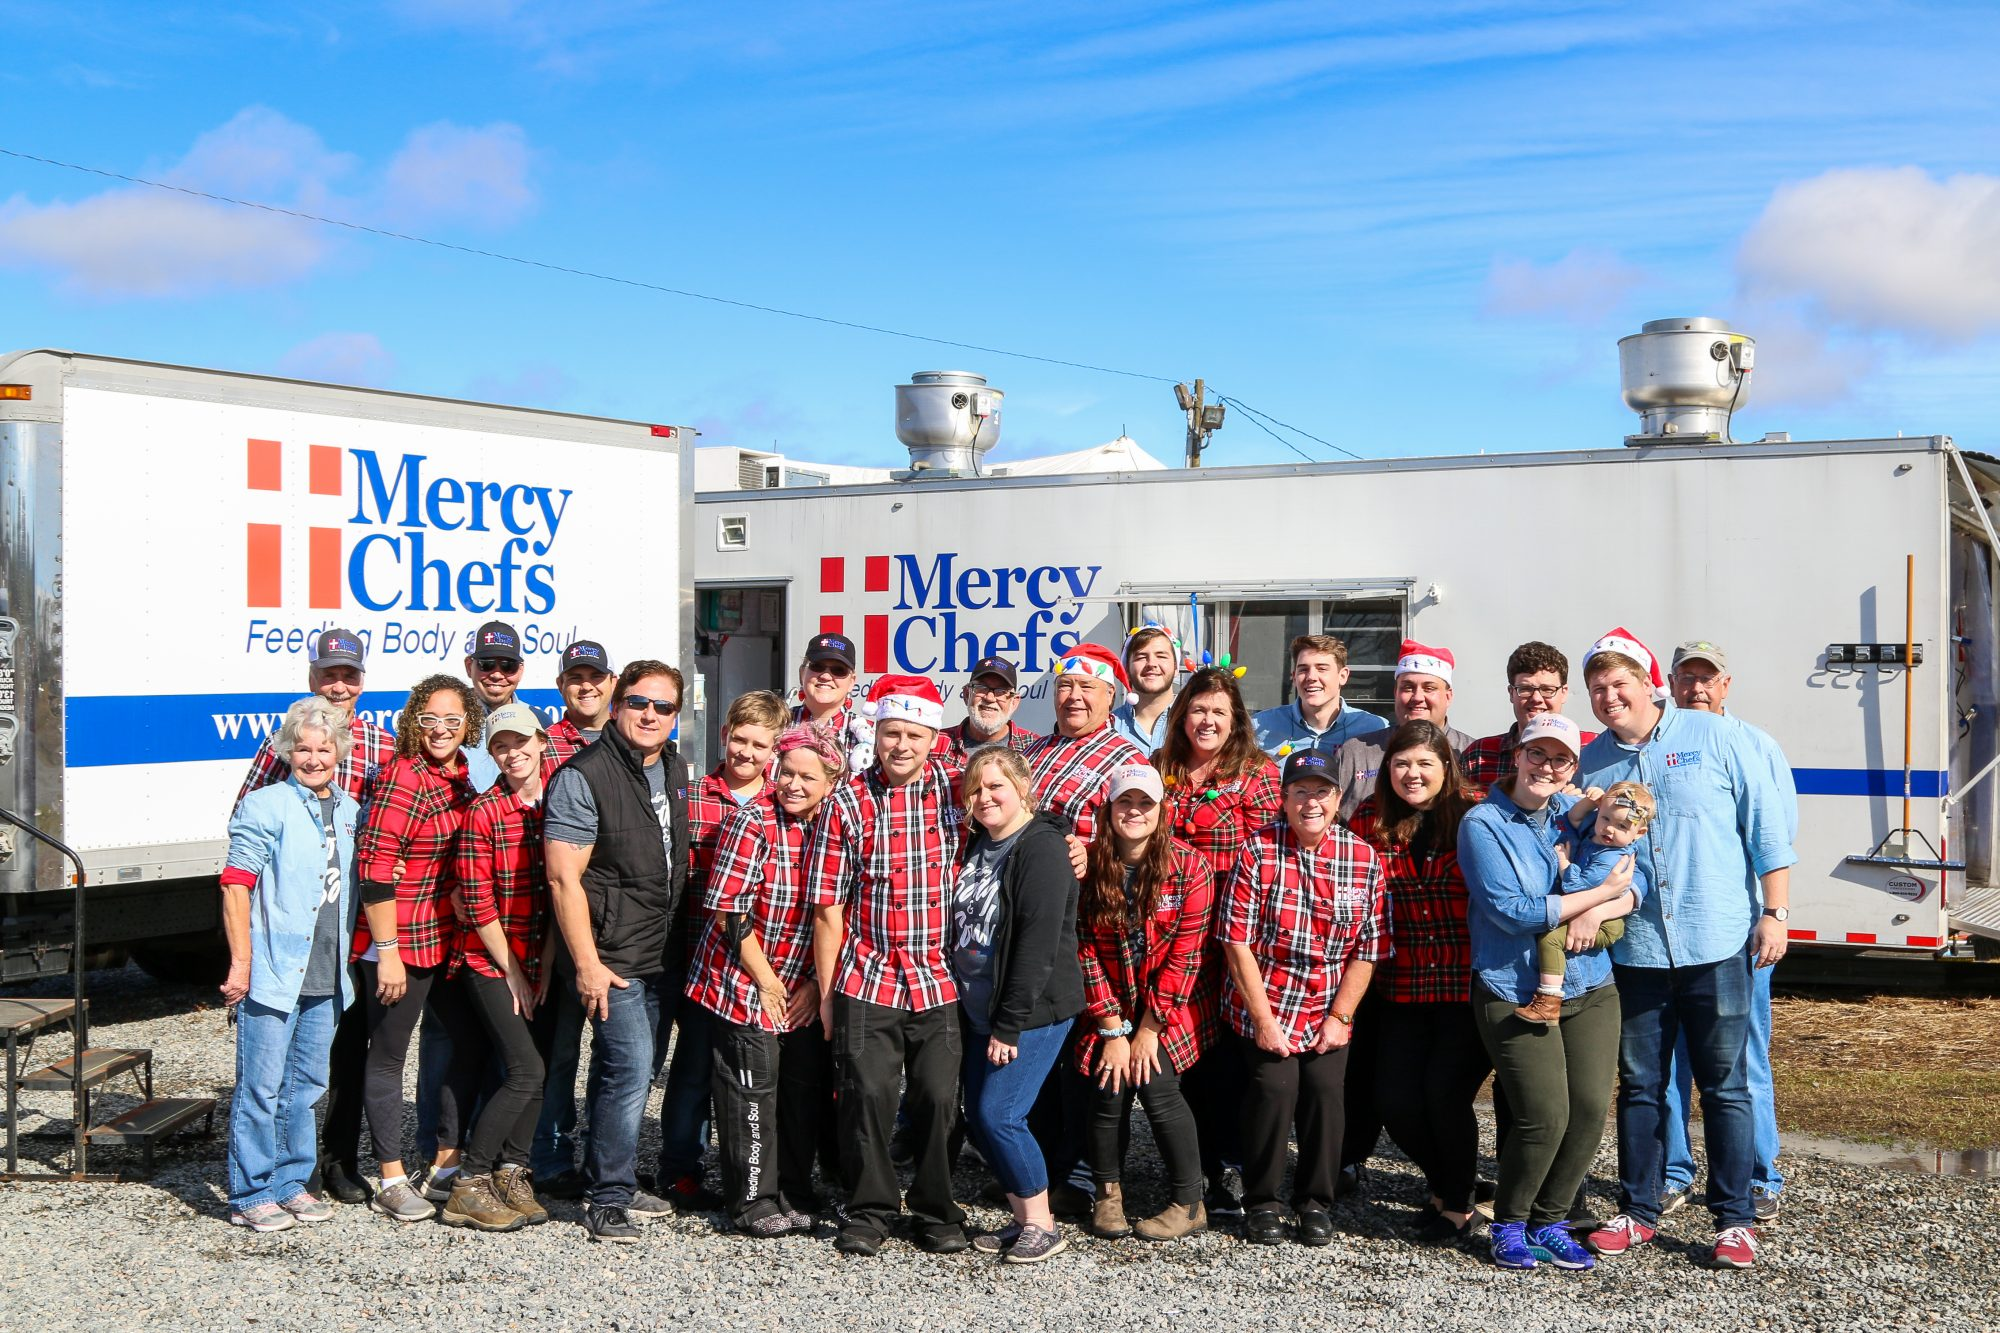 Mercy Chefs Thanksgiving Meal Team Photo